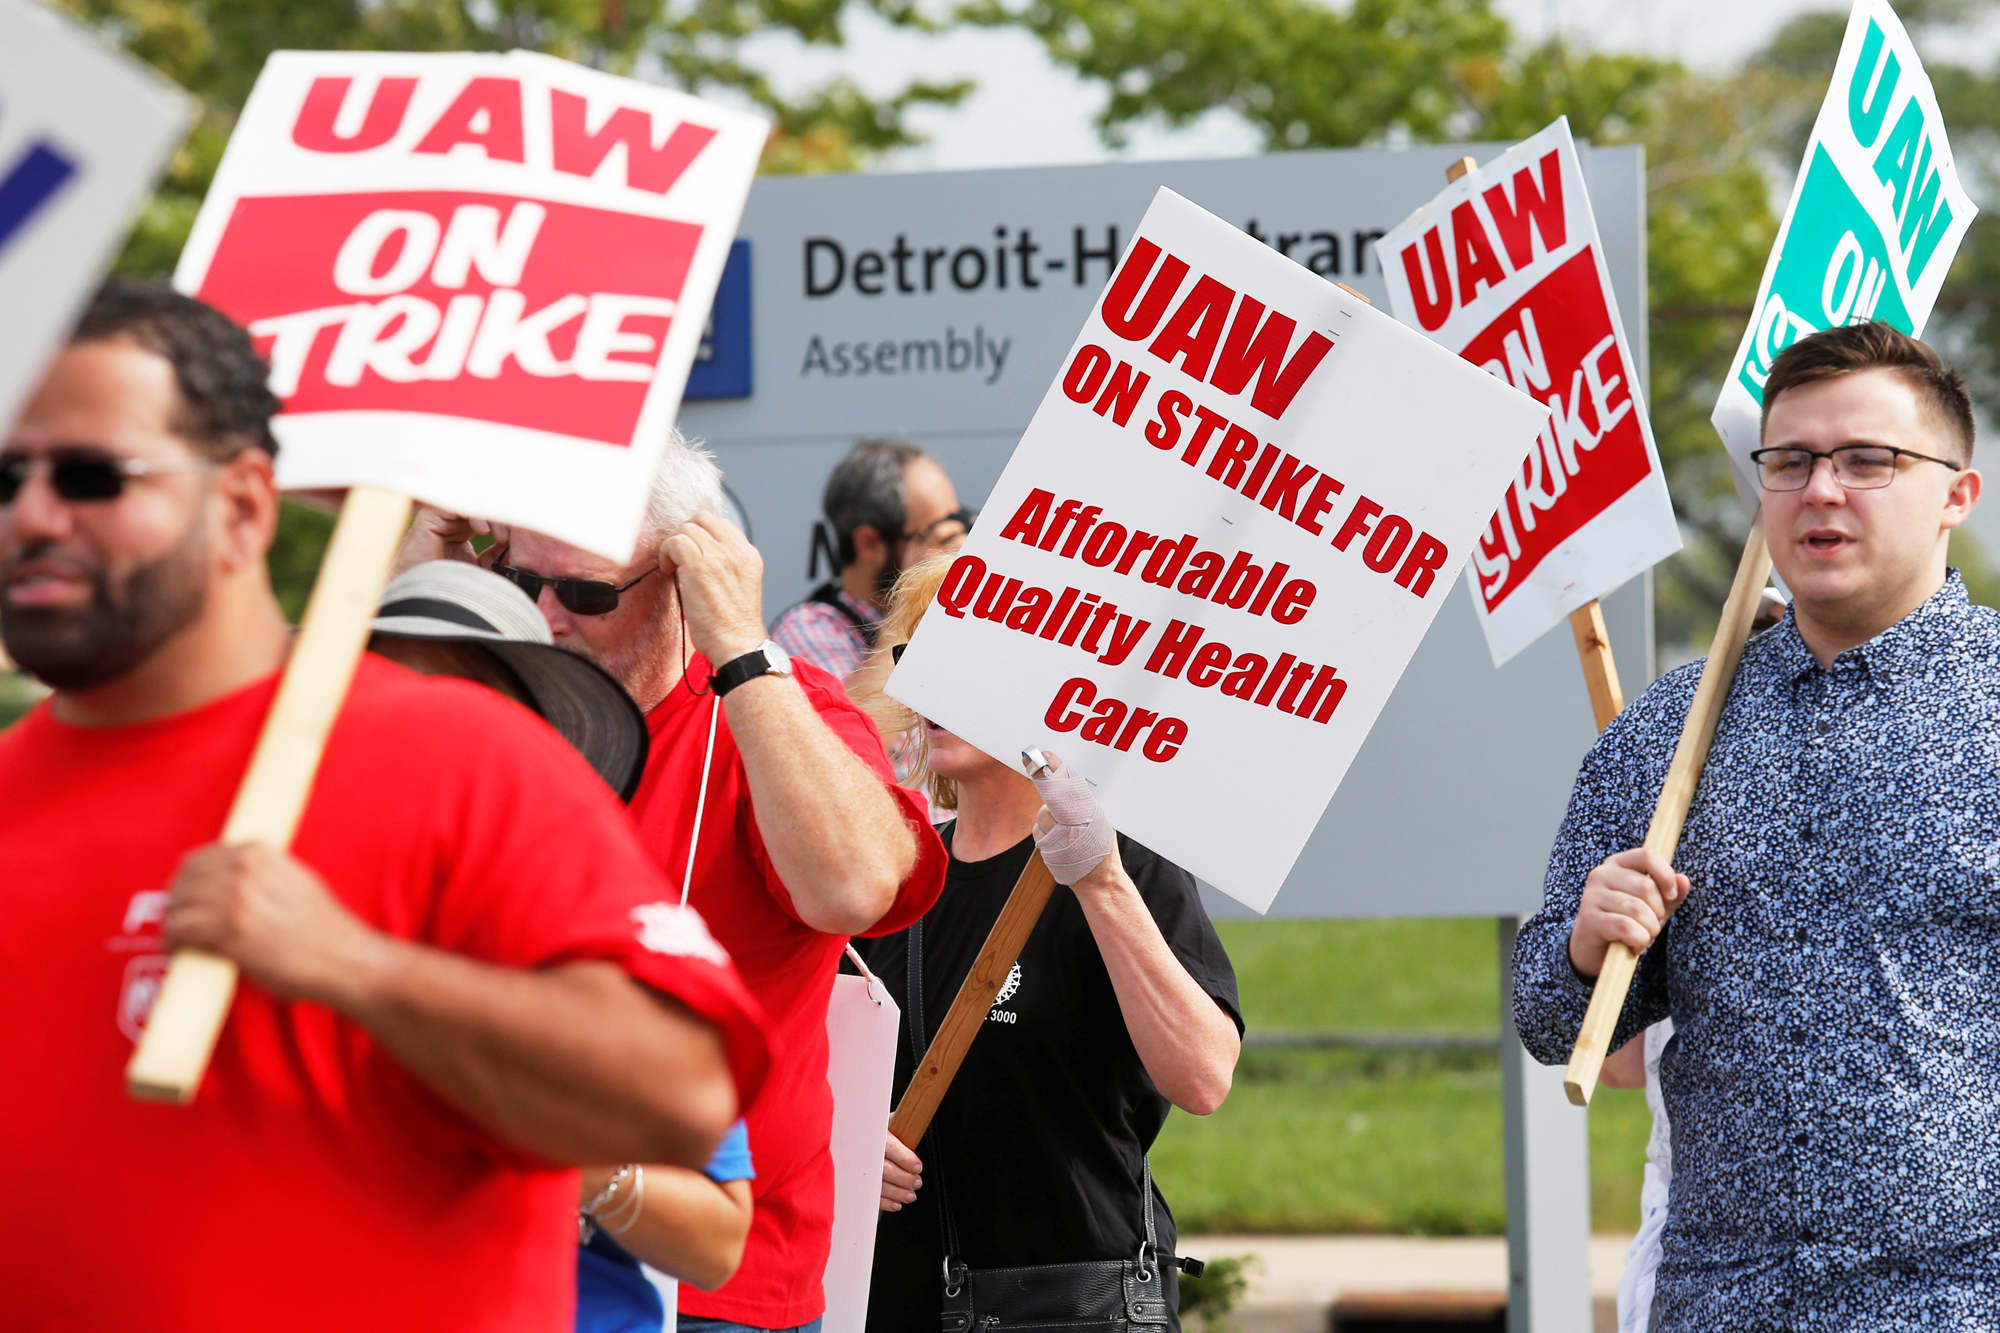 GM, UAW agree on tentative labor contract that could end a monthlong strike by 48,000 workers